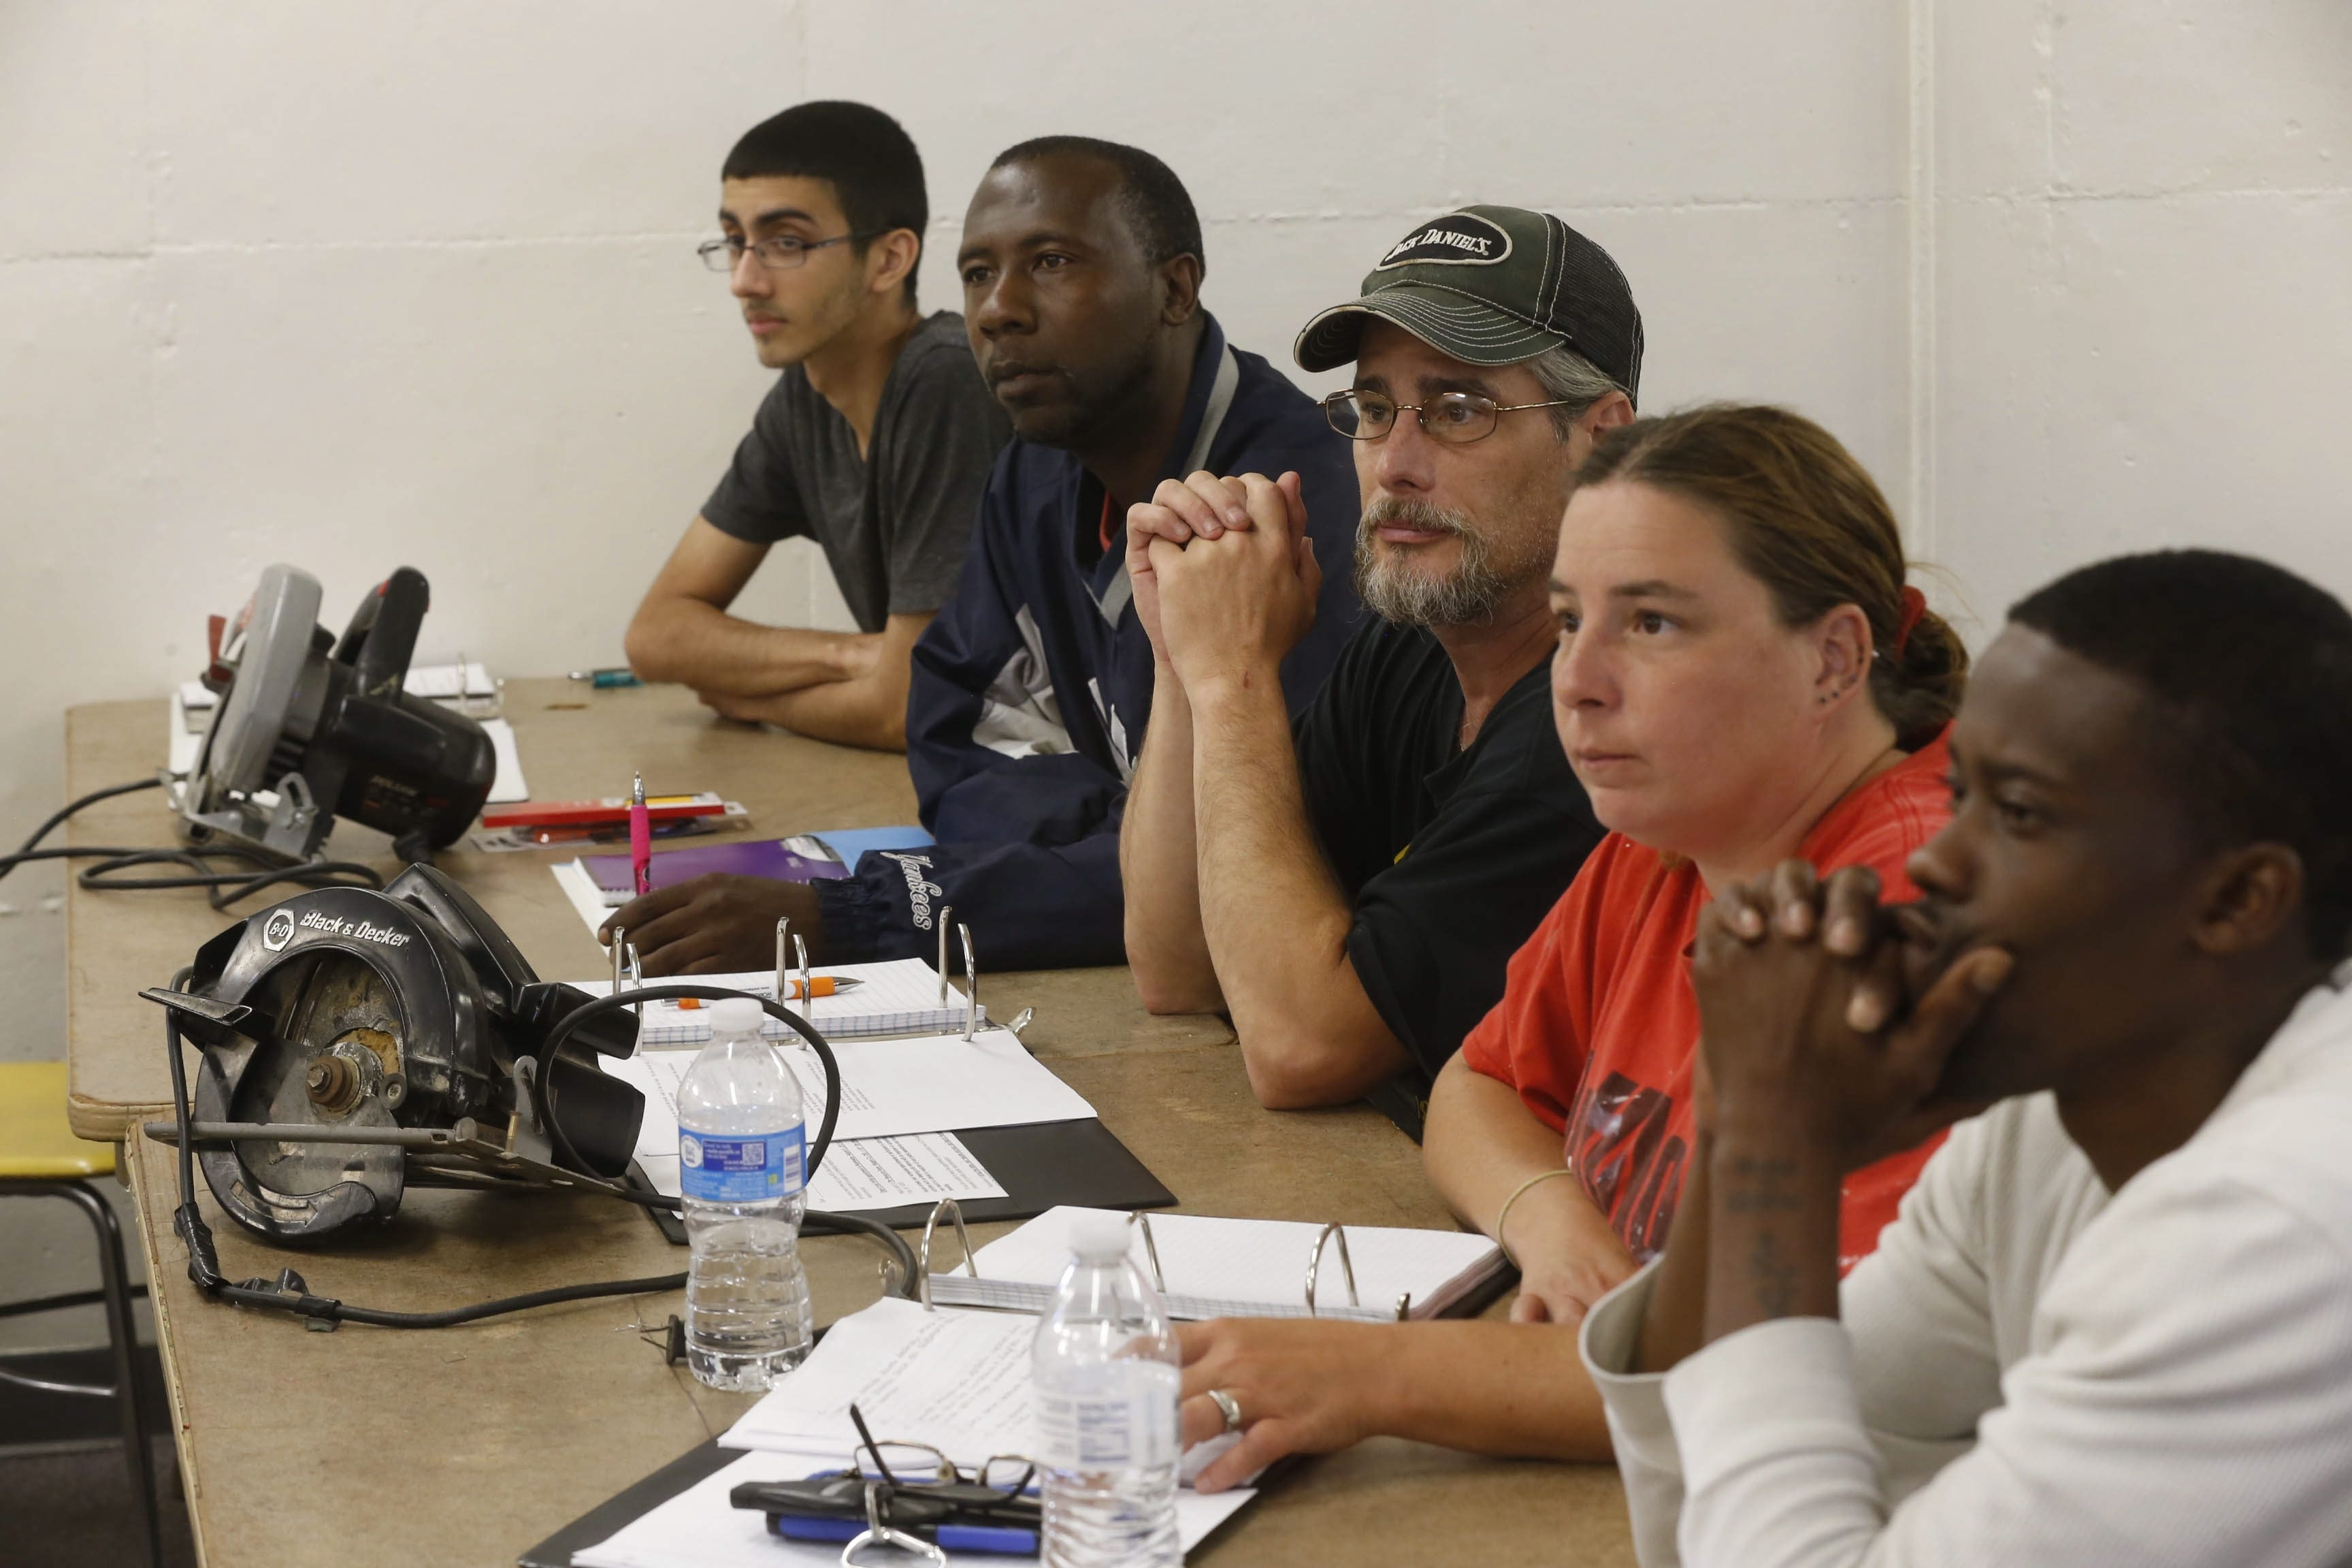 Students, from left, Hernan Velez, James Cowart, Philip Marshanke, Kathrine Hudson and Christopher Johnson listen to instructions at the Isaiah 61 Project classroom at 1609 22nd St., Niagara Falls.